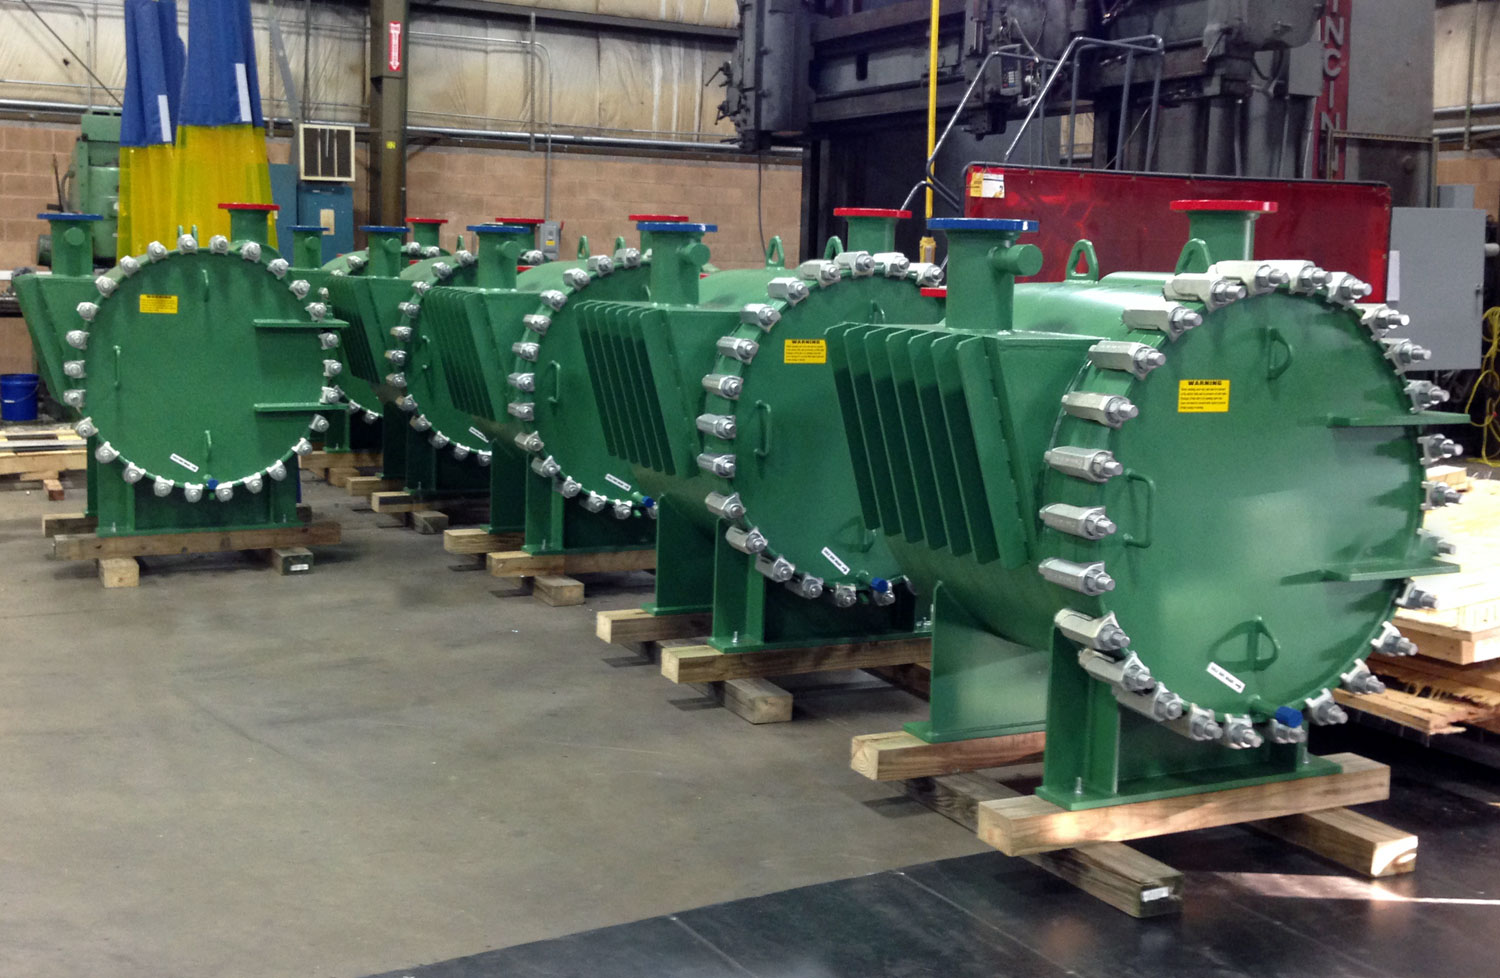 Type 1-DO Spiral Sludge Digester Heaters   Partial shipment of six (6) Gooch Thermal spiral heat exchangers for one of the world's largest wastewater treatment plants in Mexico.